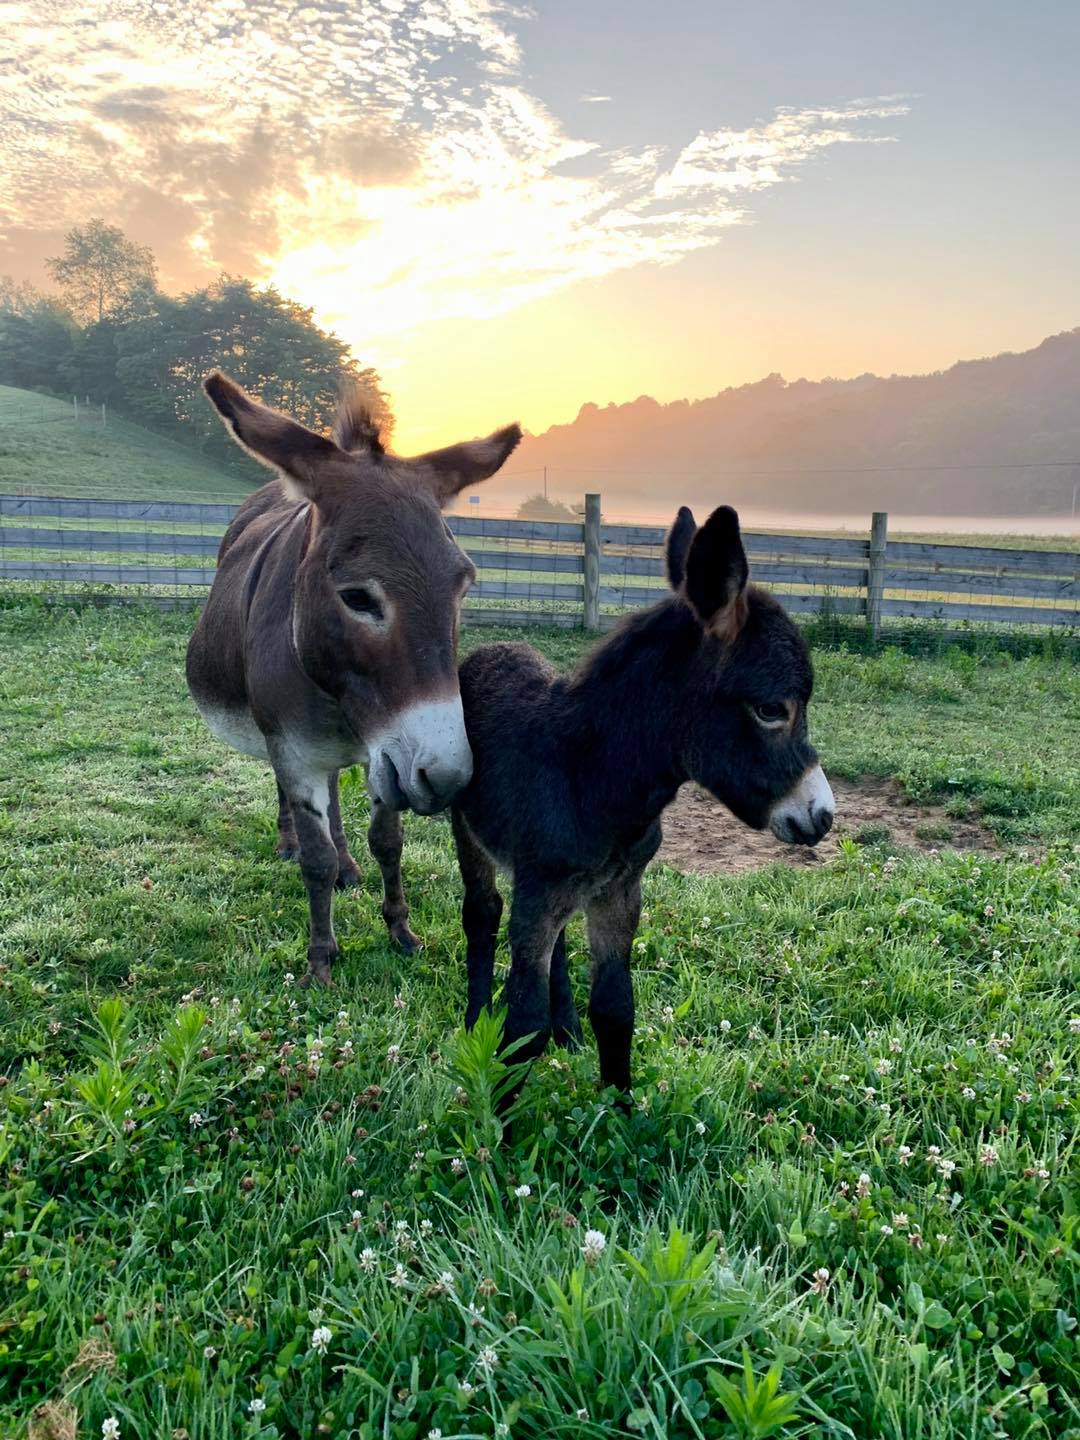 Mom donkey Cindy with new baby Zeke